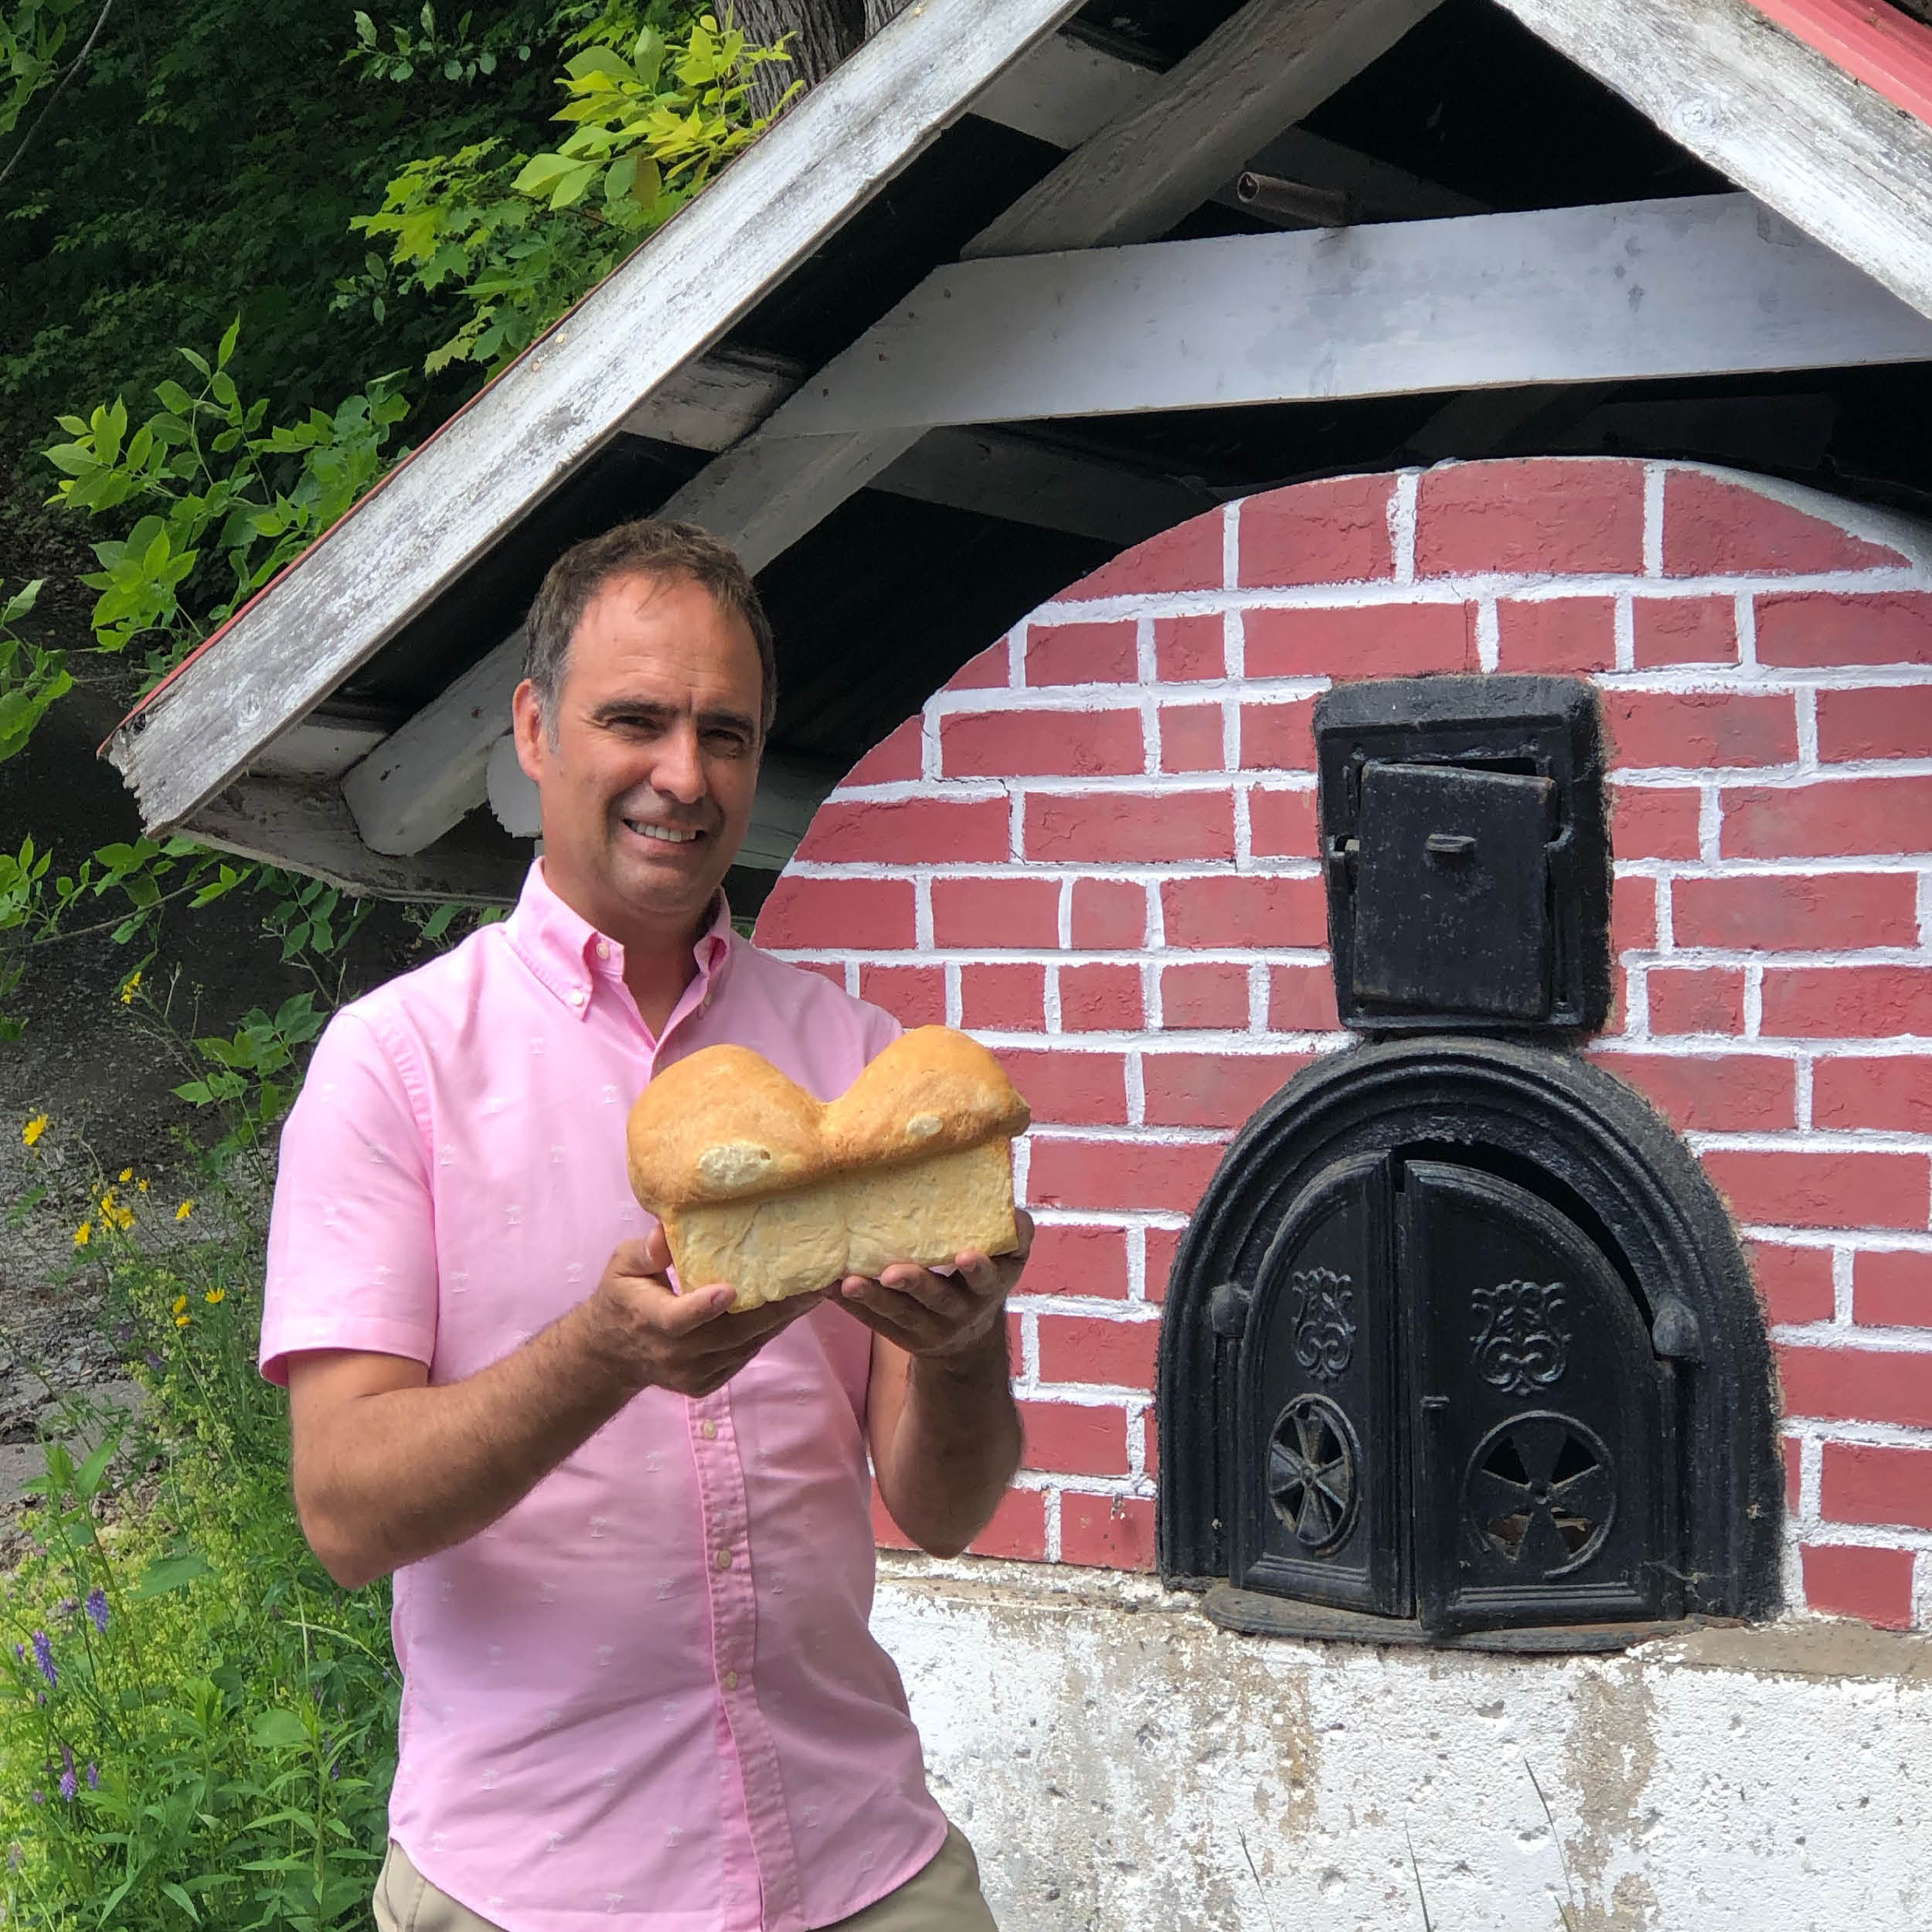 Homemade bread from an outdoor bread oven in the Beaupre Coast